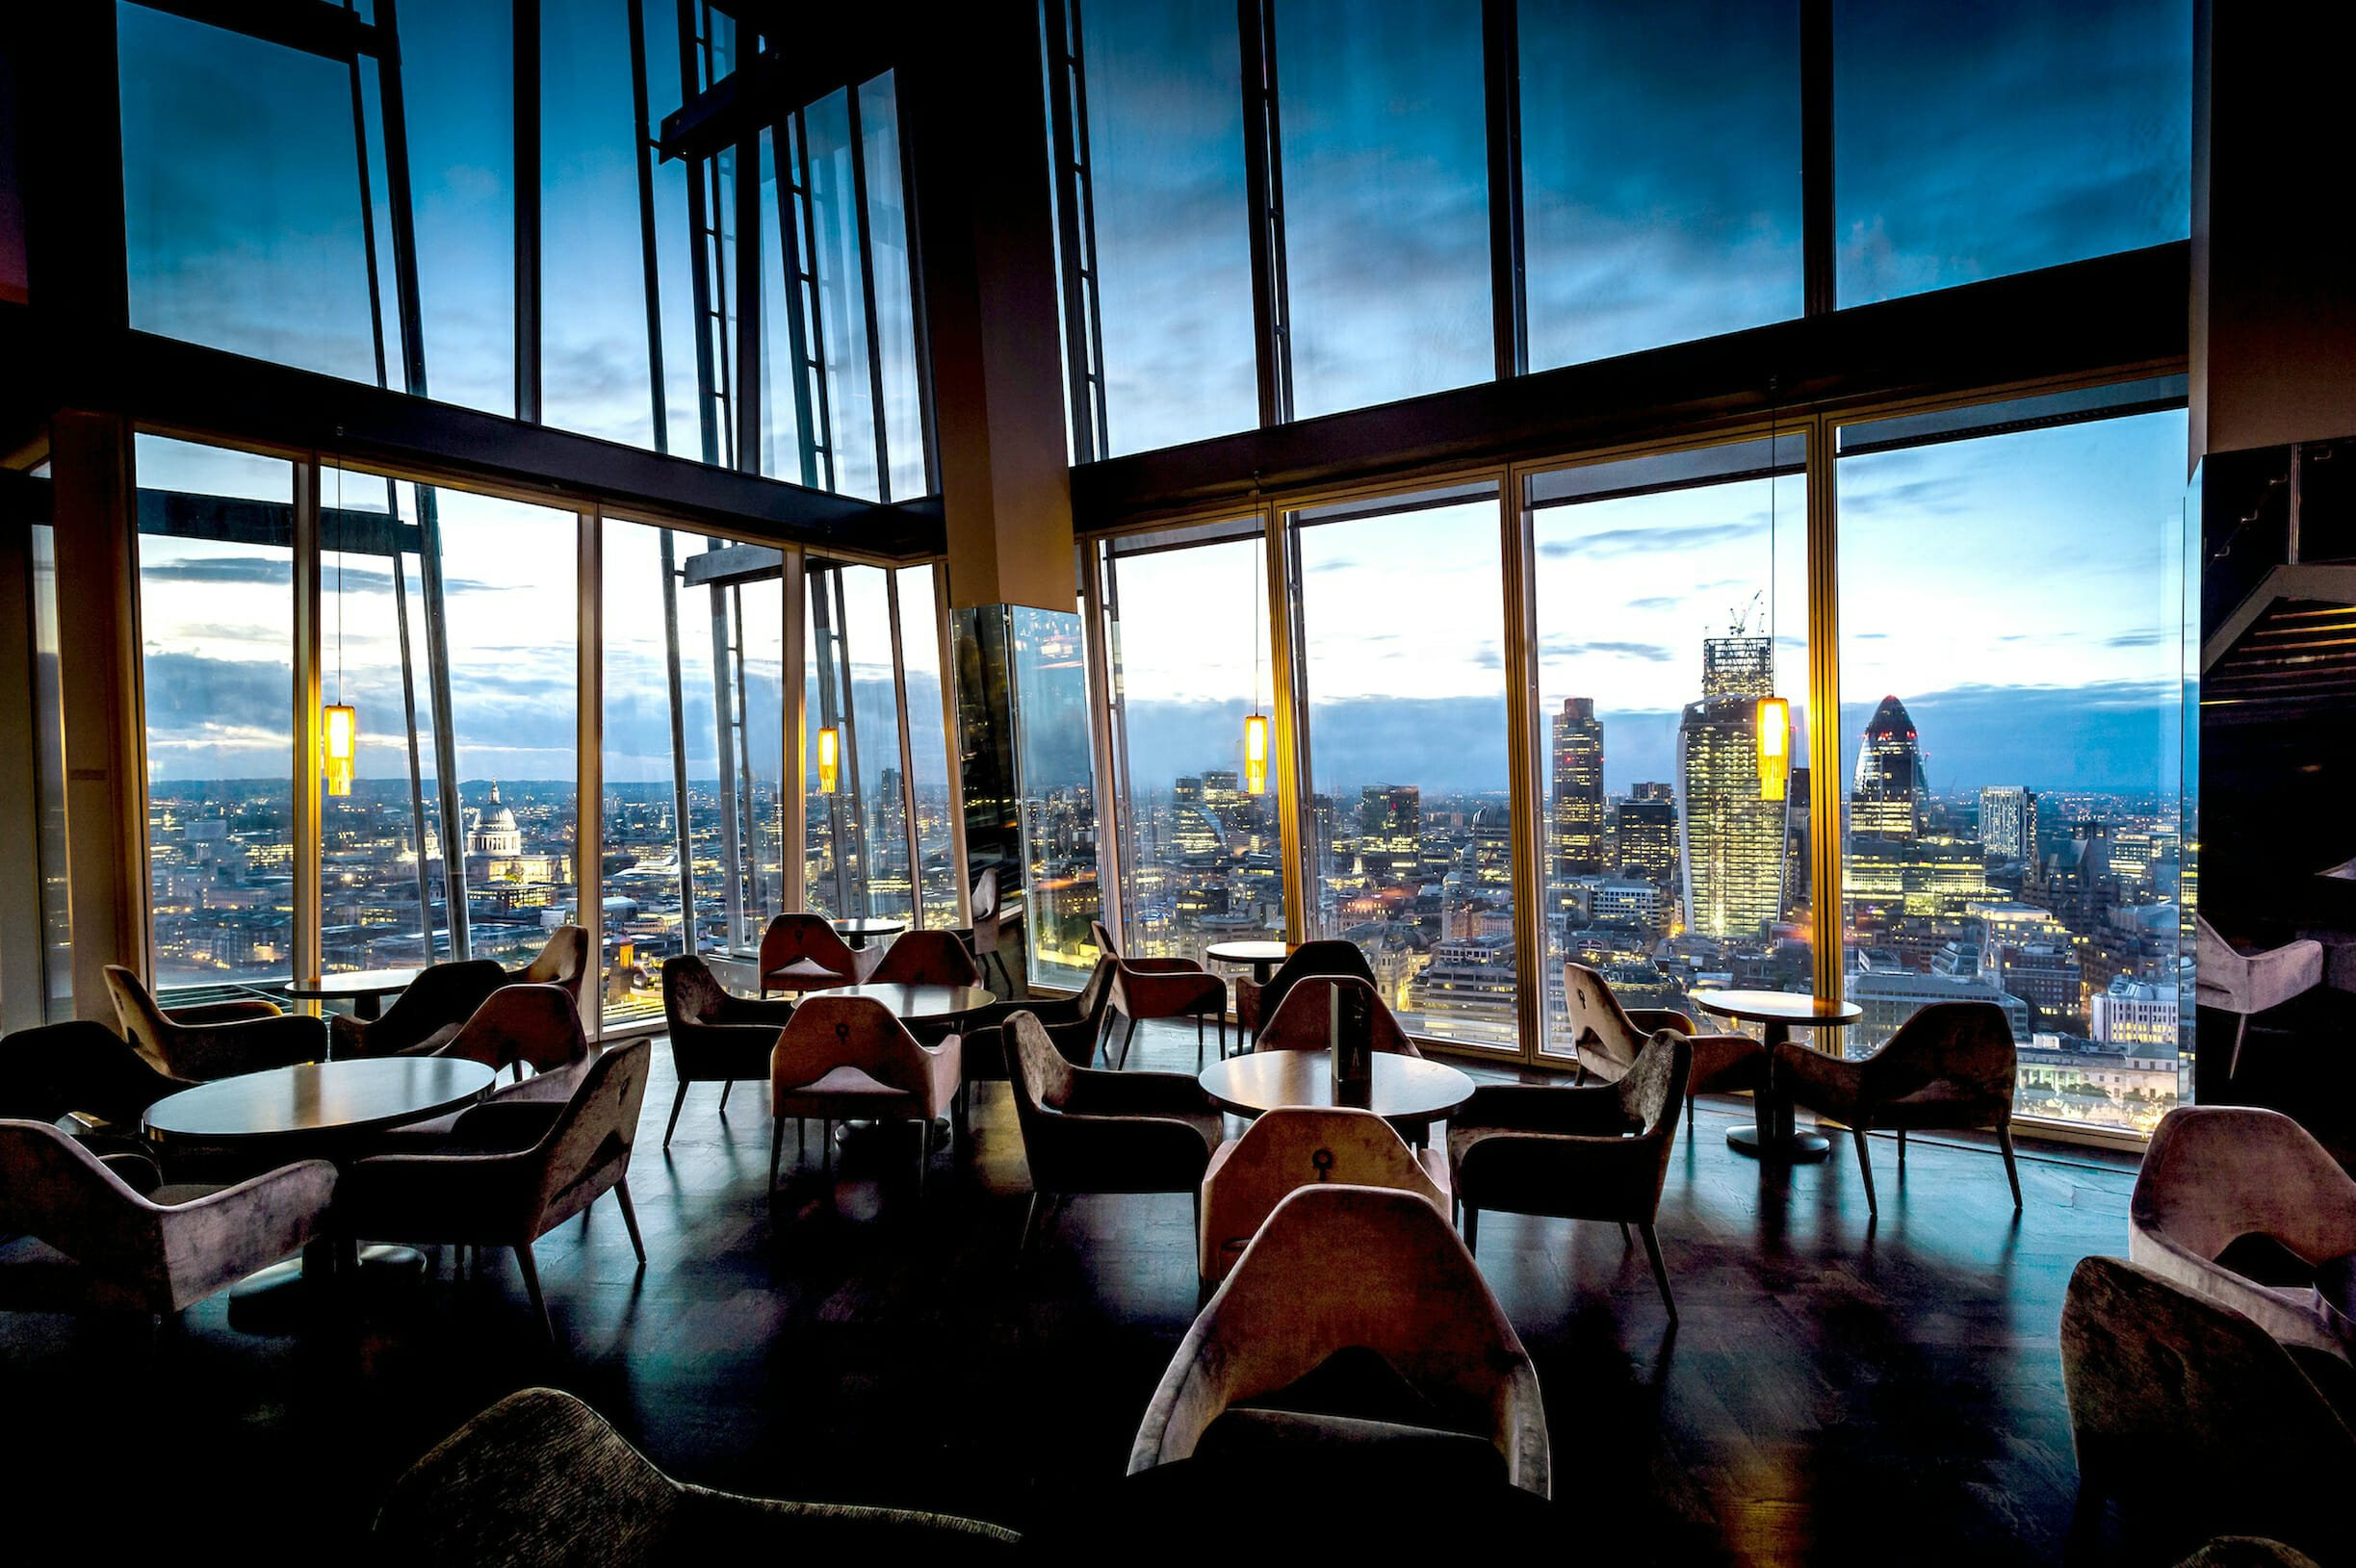 Aqua Shard romantic restaurants